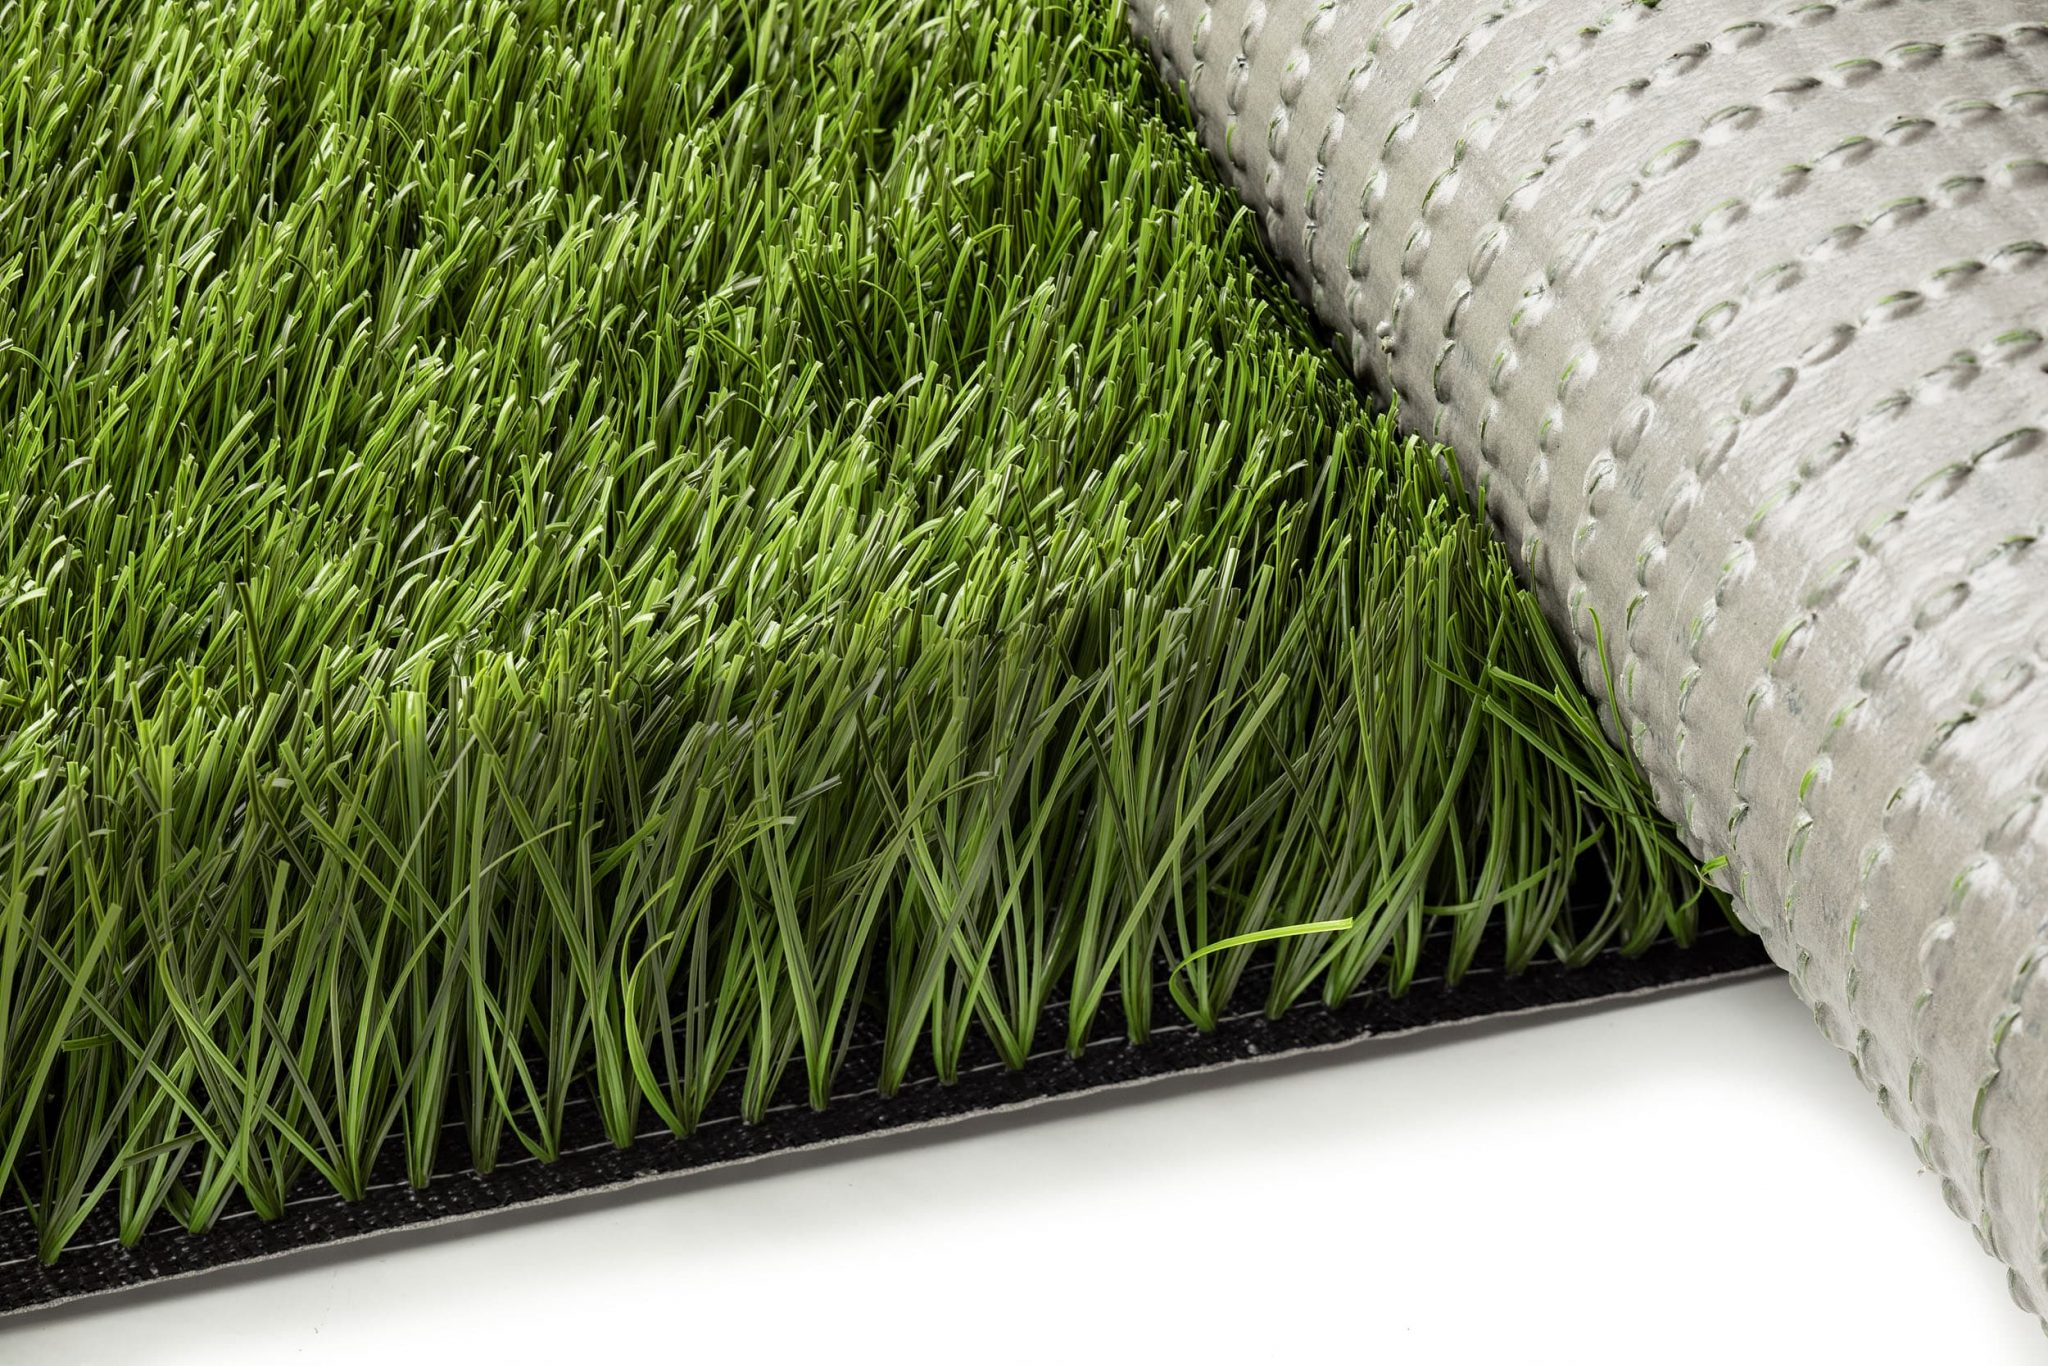 Synthetic pitch turf; Polyurethane PU backing